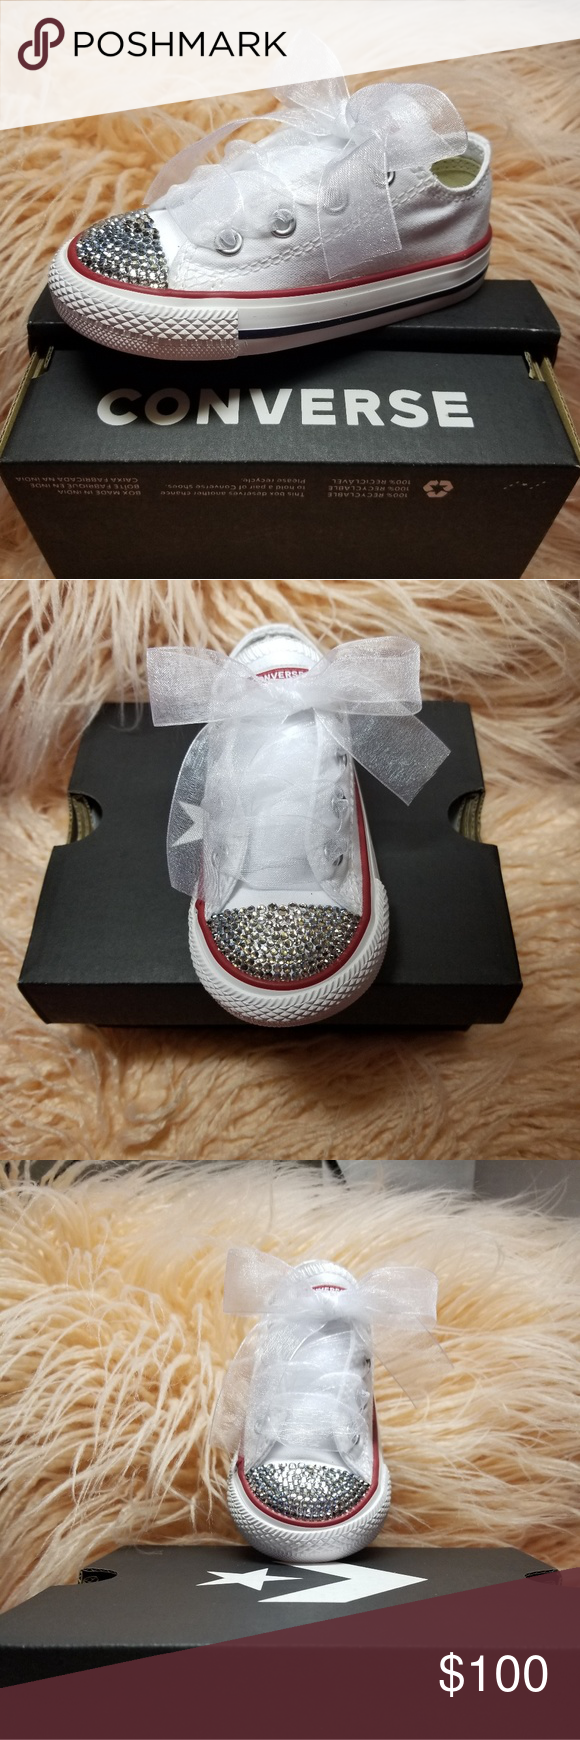 Swarovski Crystal Converse Infant Sz 6 Baby Girls  Toddler Converse Chuck  Taylor OX Casual Shoes 0ed85629a3de